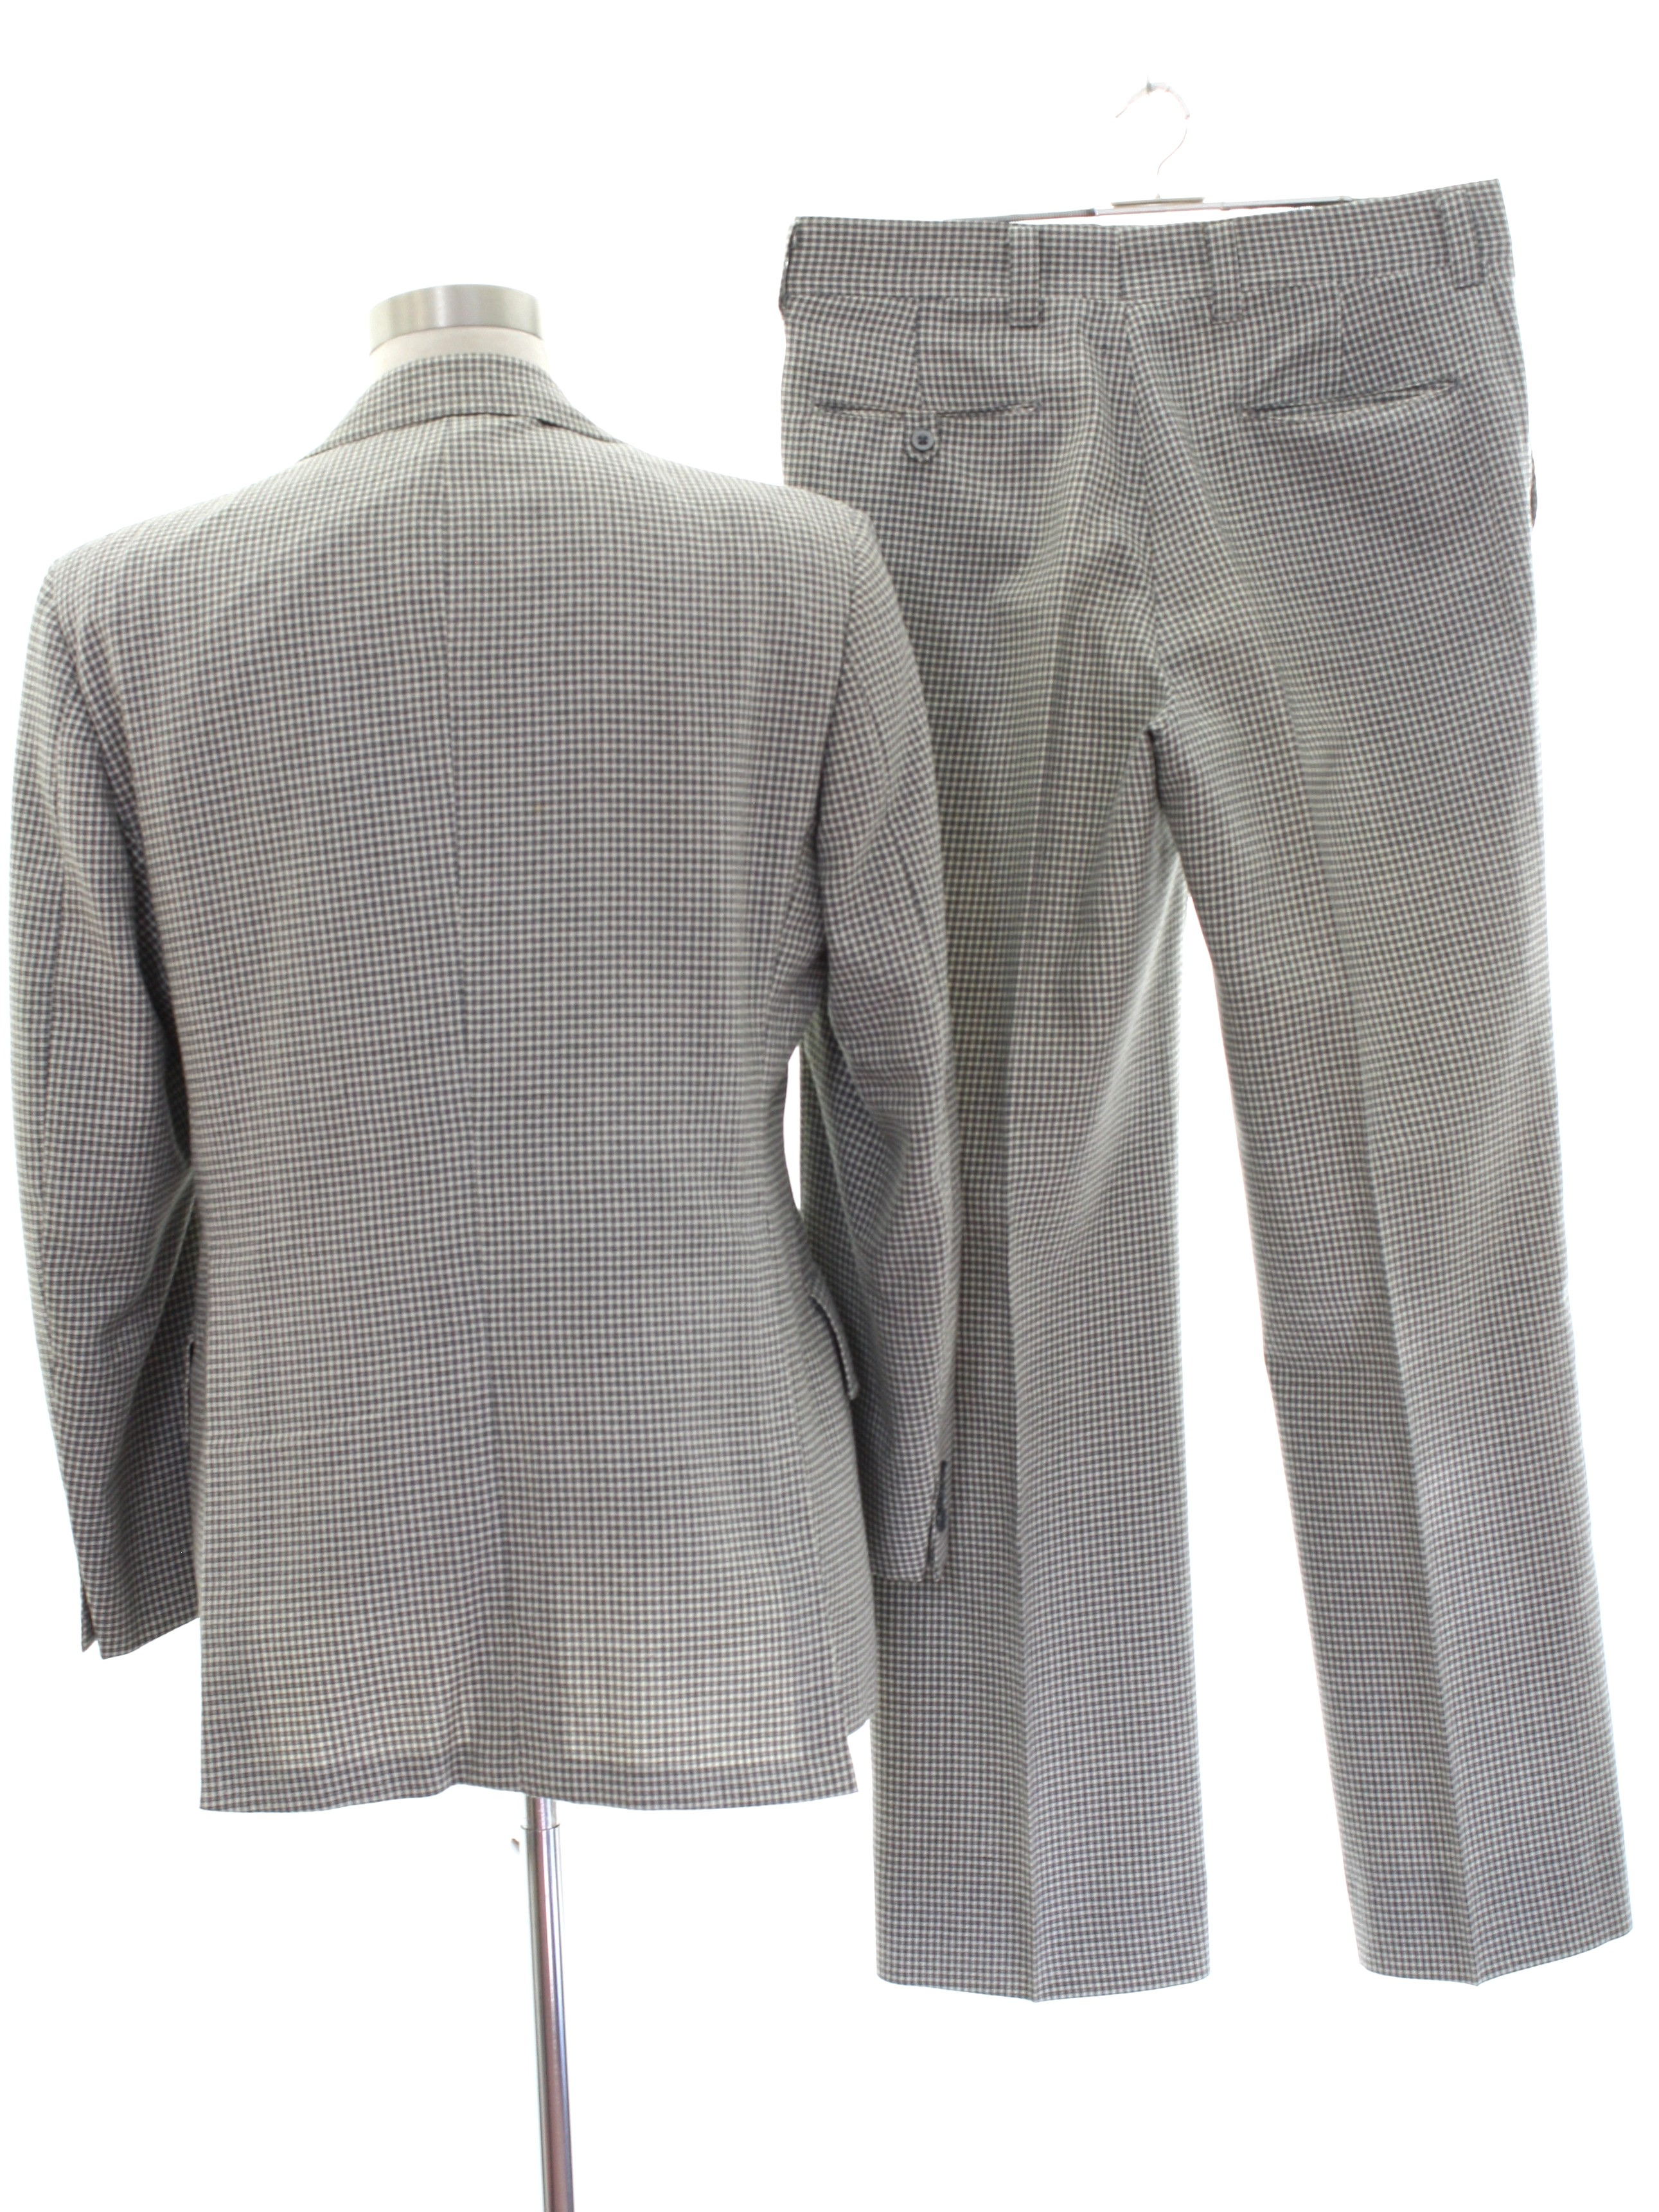 Retro 1960 S Suit Austin Reed Late 60s Or Early 70s Austin Reed Mens Grey Wool Suit With A Tiny Hounds Tooth Check Pattern Which Uses Charcoal To Outline On A White Background